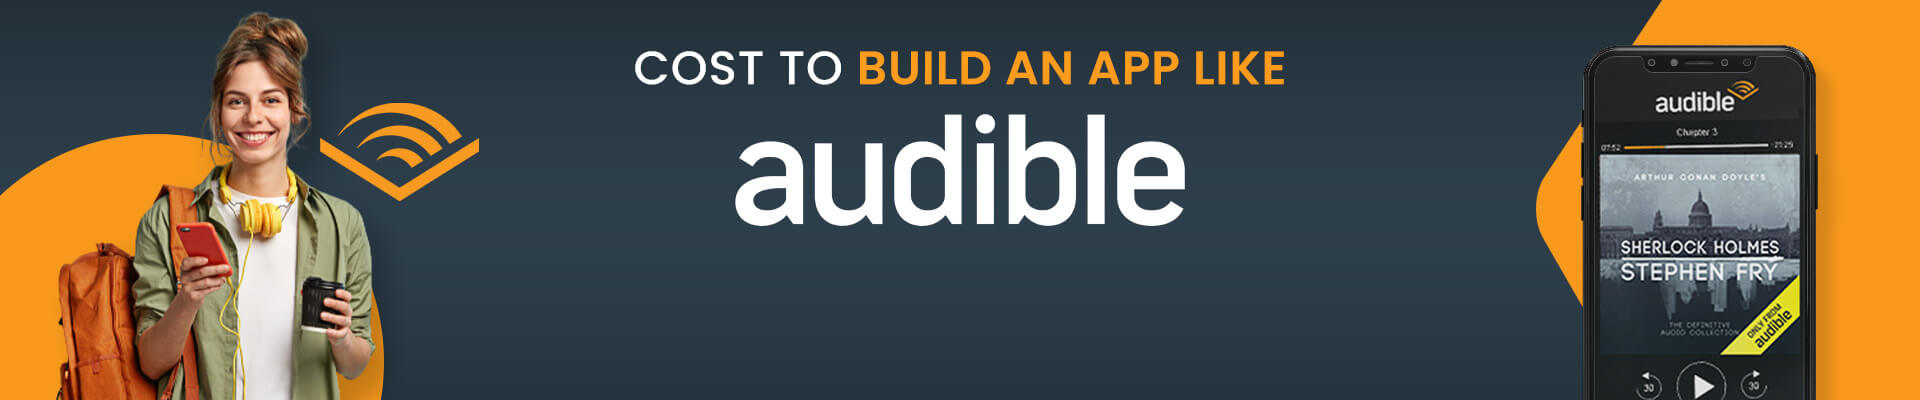 How Much Does It Cost To Build An App Like Audible in 2021?